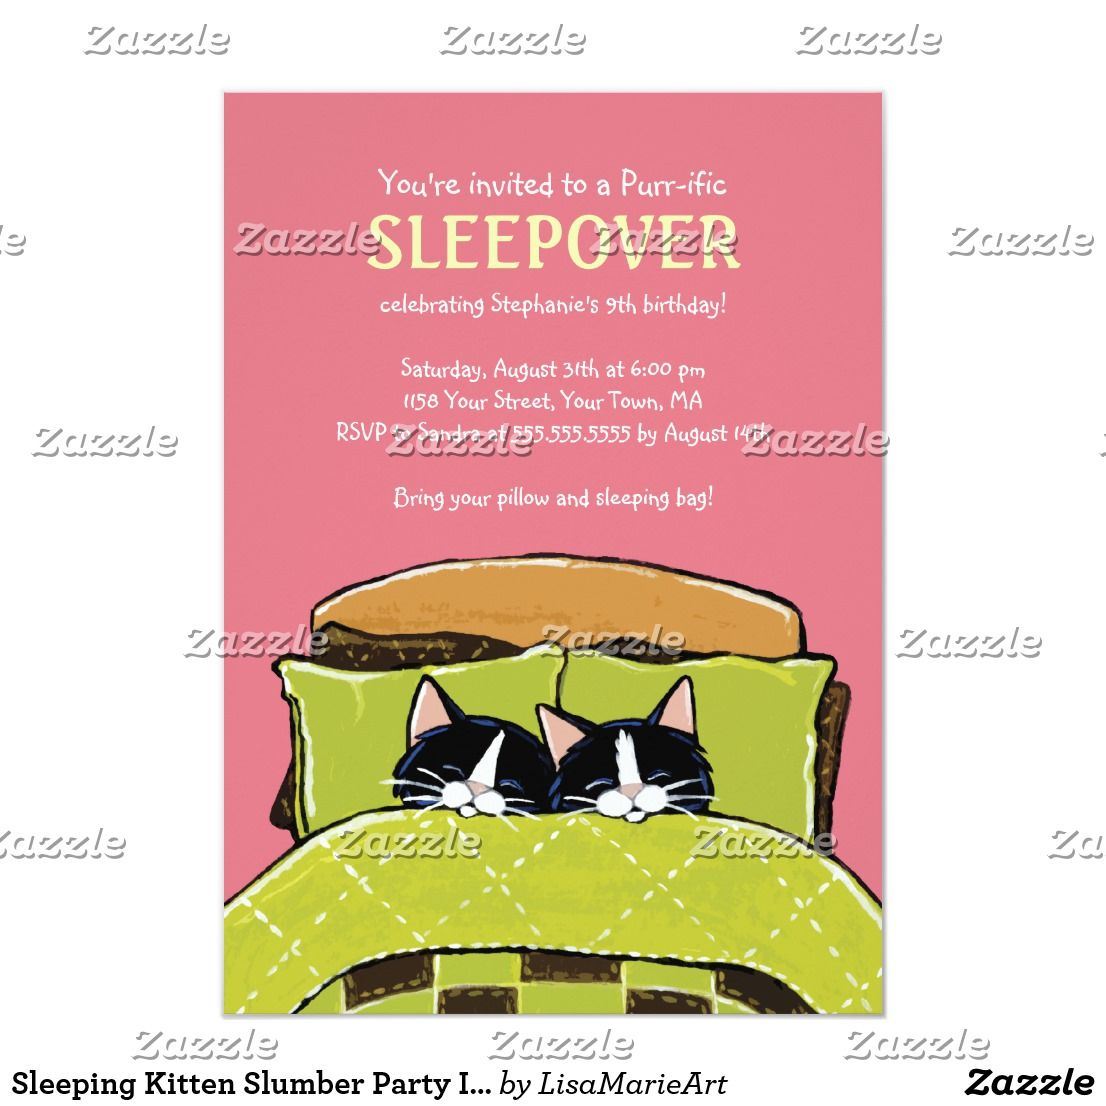 Sleeping Kitten Slumber Party Invitations Zazzle Com Slumber Party Invitations Slumber Parties Sleeping Kitten